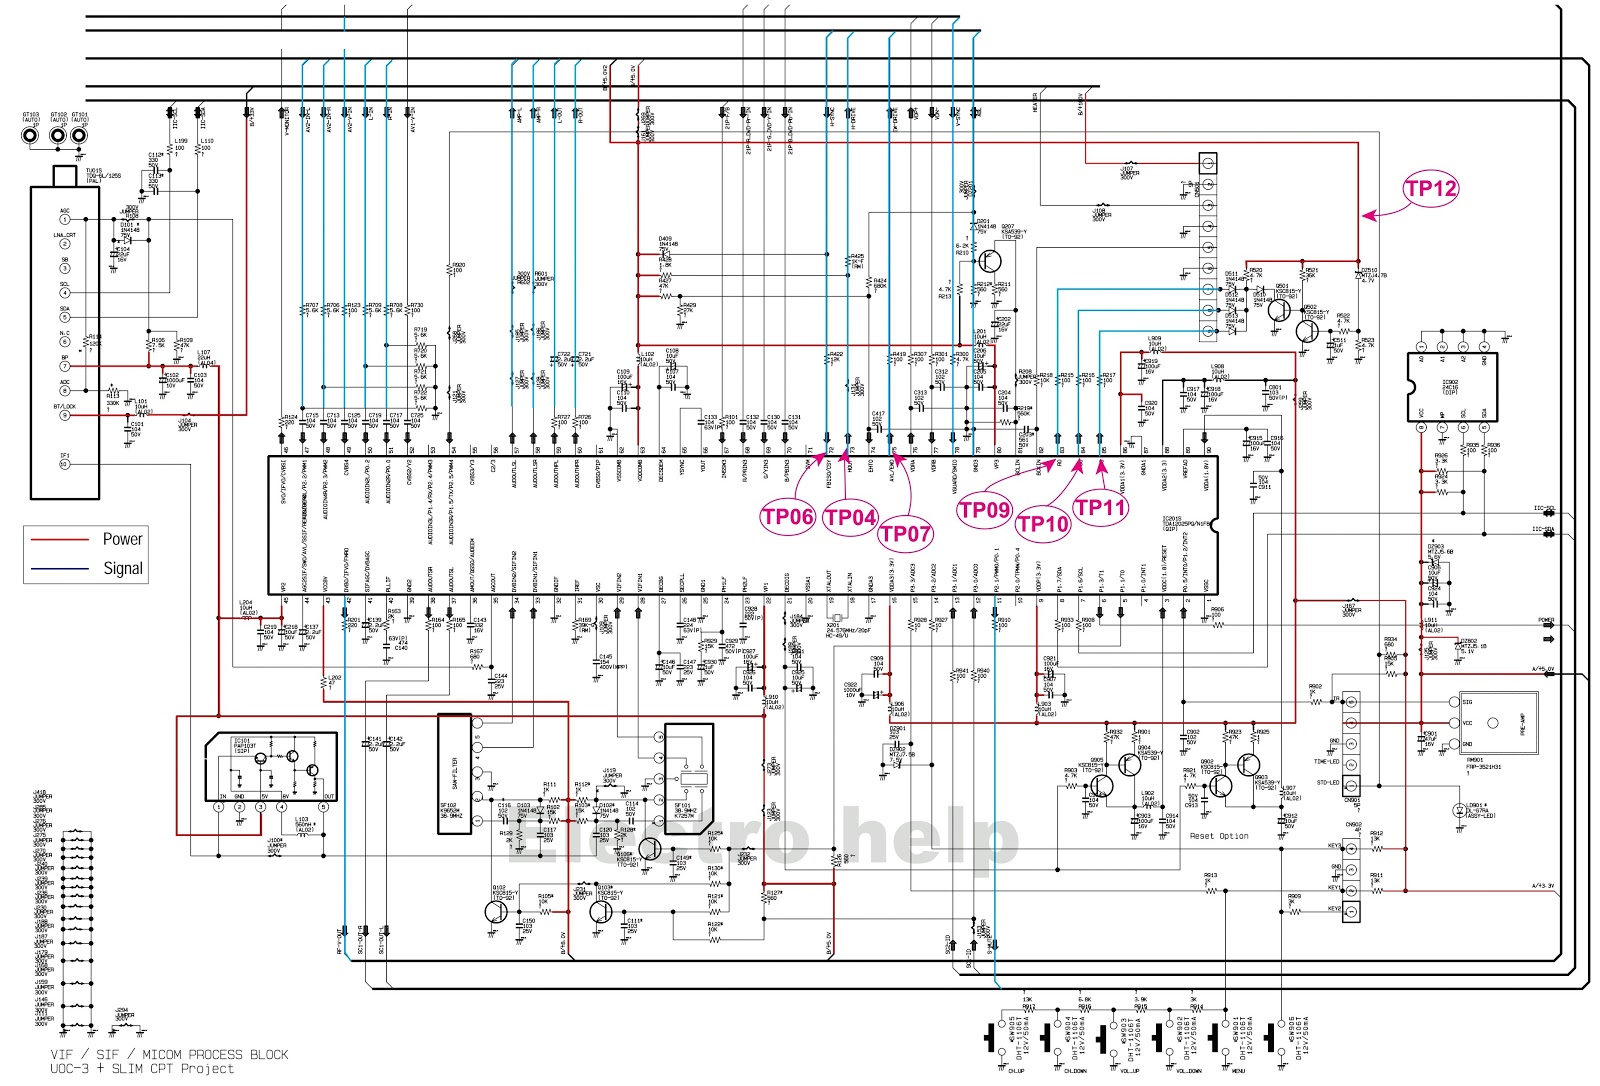 crt tv circuit diagram pdf crt image wiring diagram samsung circuit diagram the wiring diagram on crt tv circuit diagram pdf